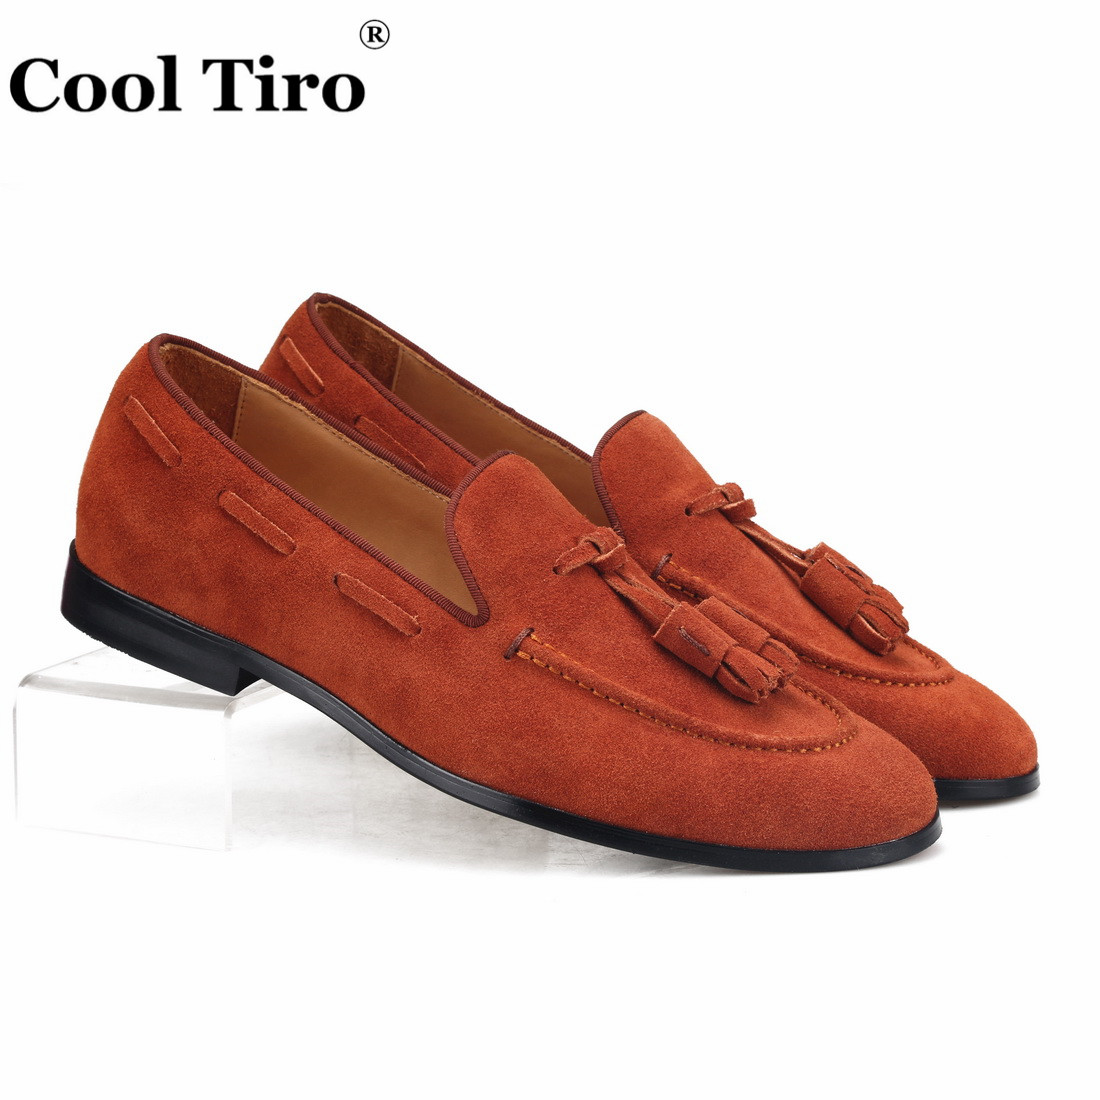 Cool Tiro Brown Suede Loafers Tassels Men s Moccasins Slippers Man Flats Slip on Casual Shoes